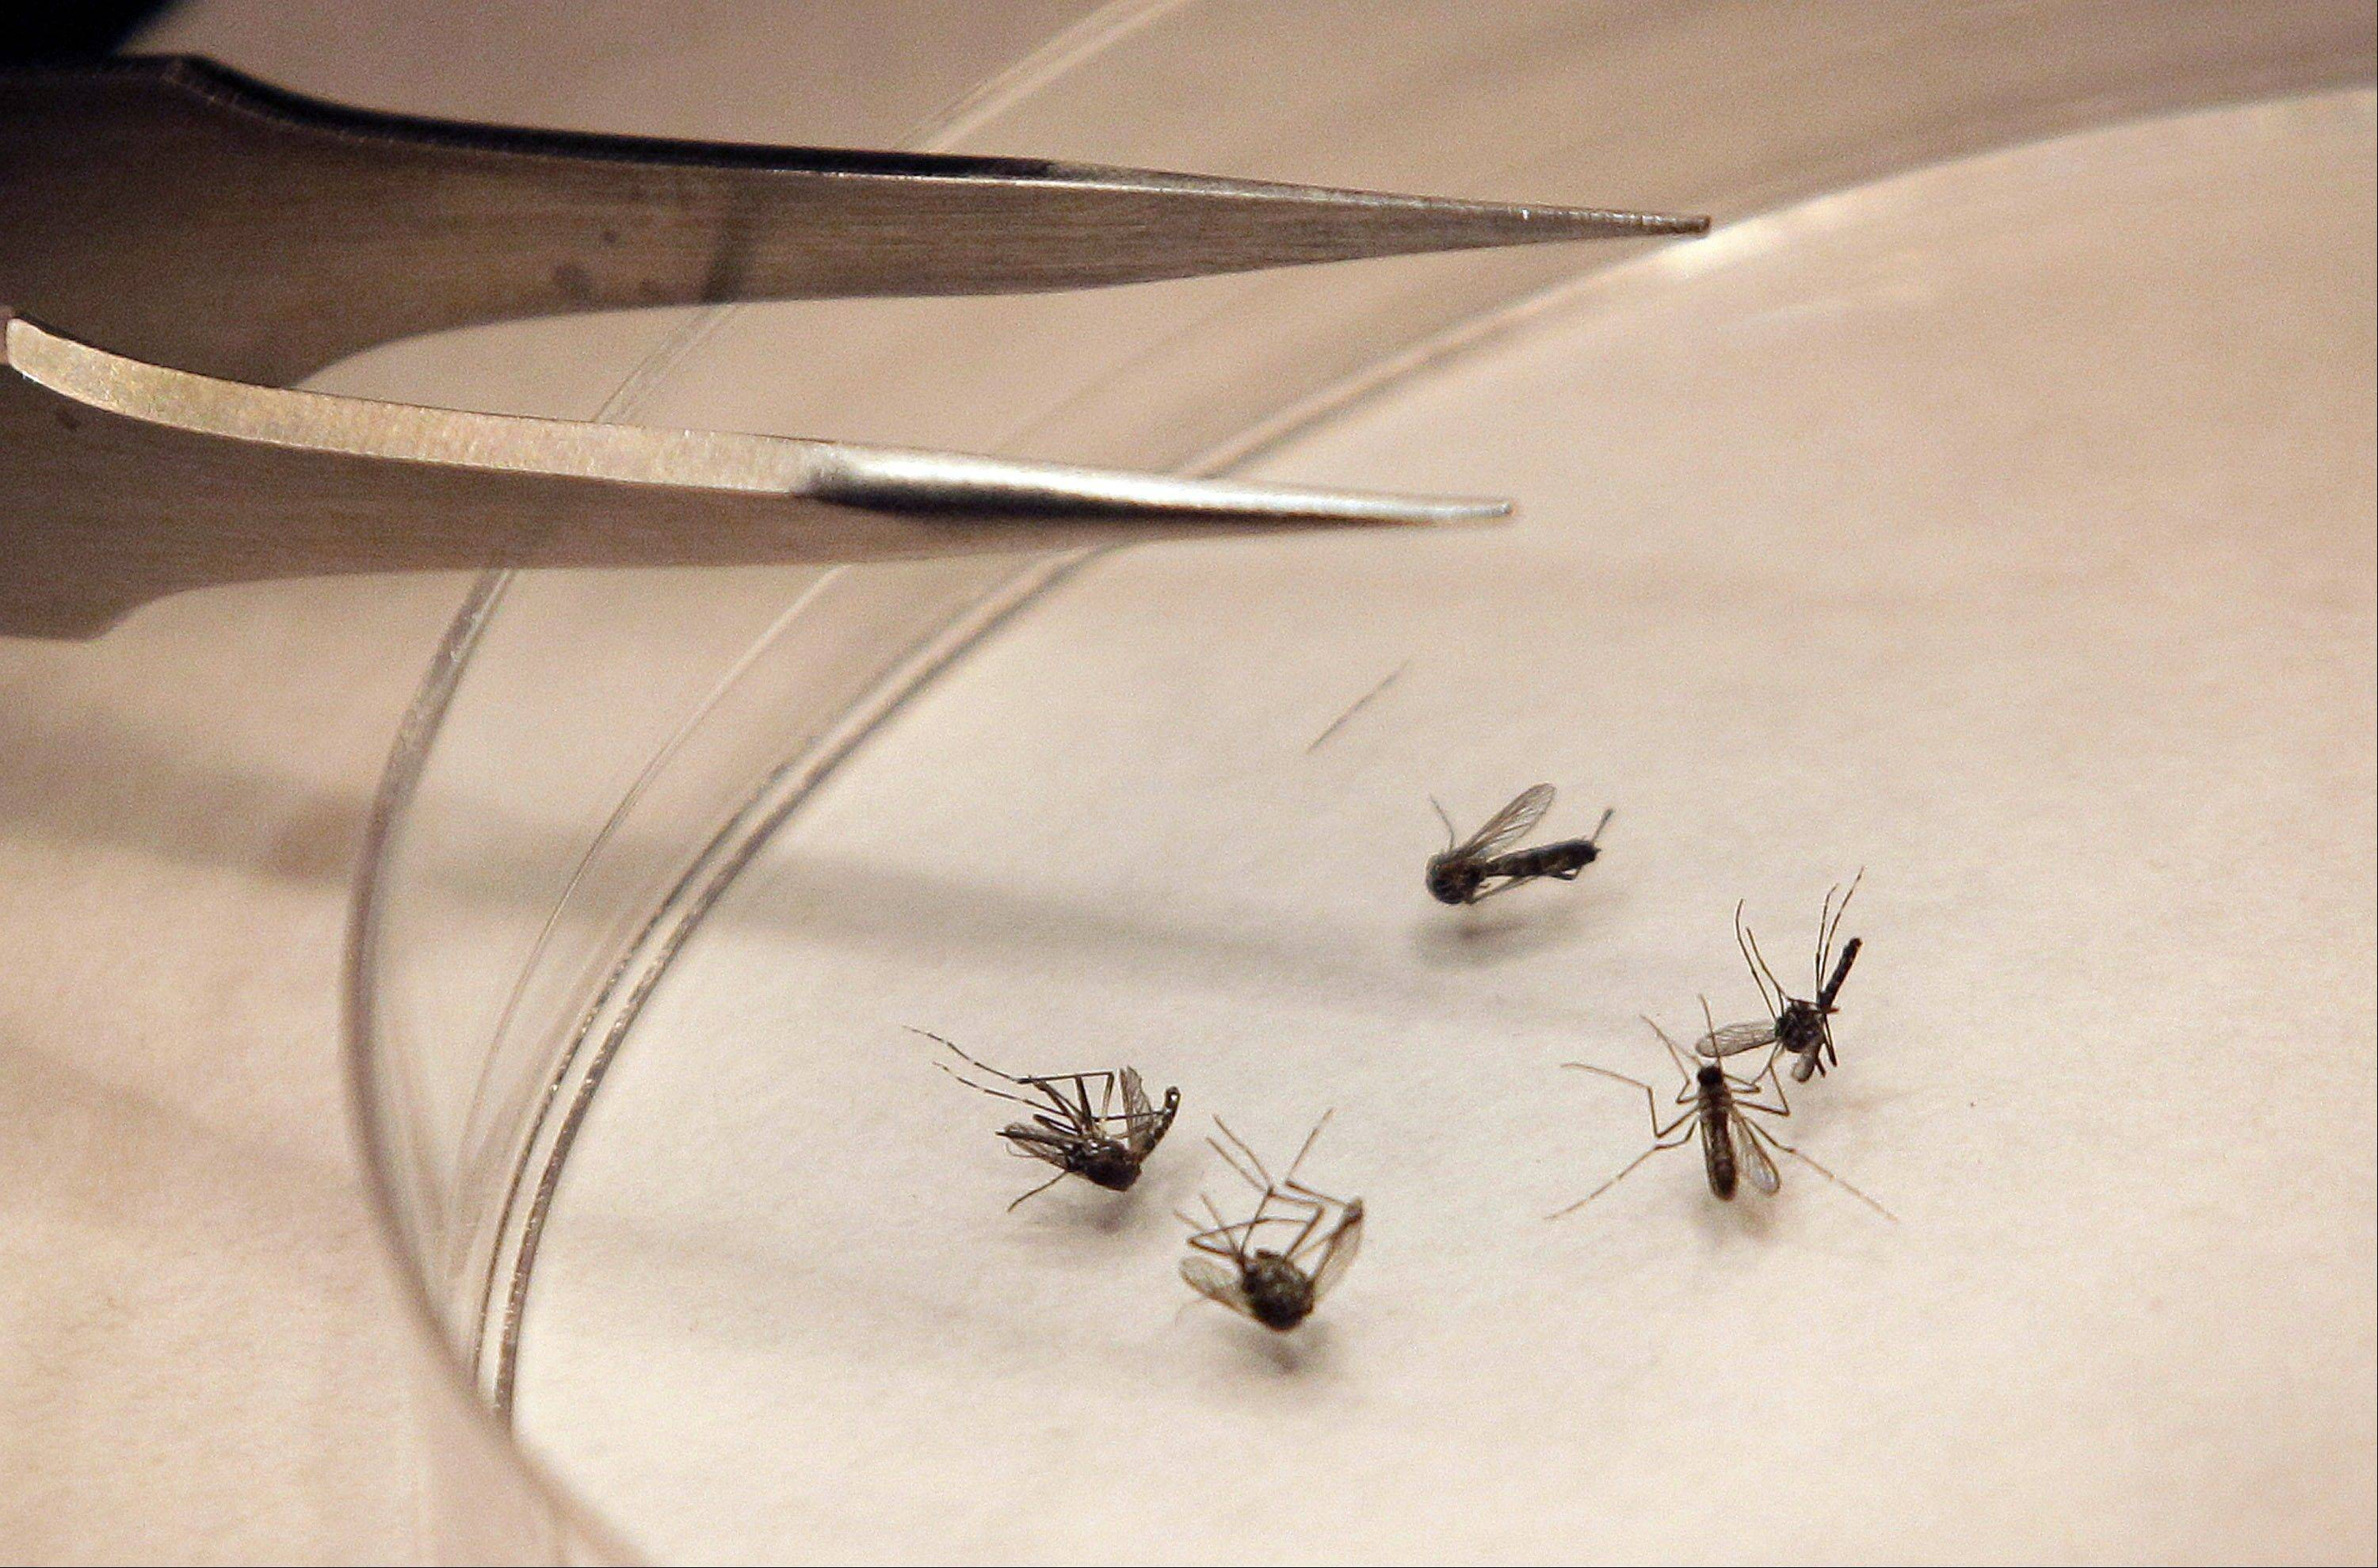 Five human cases of West Nile virus have been reported this year in Lake County, health department officials announced Friday.